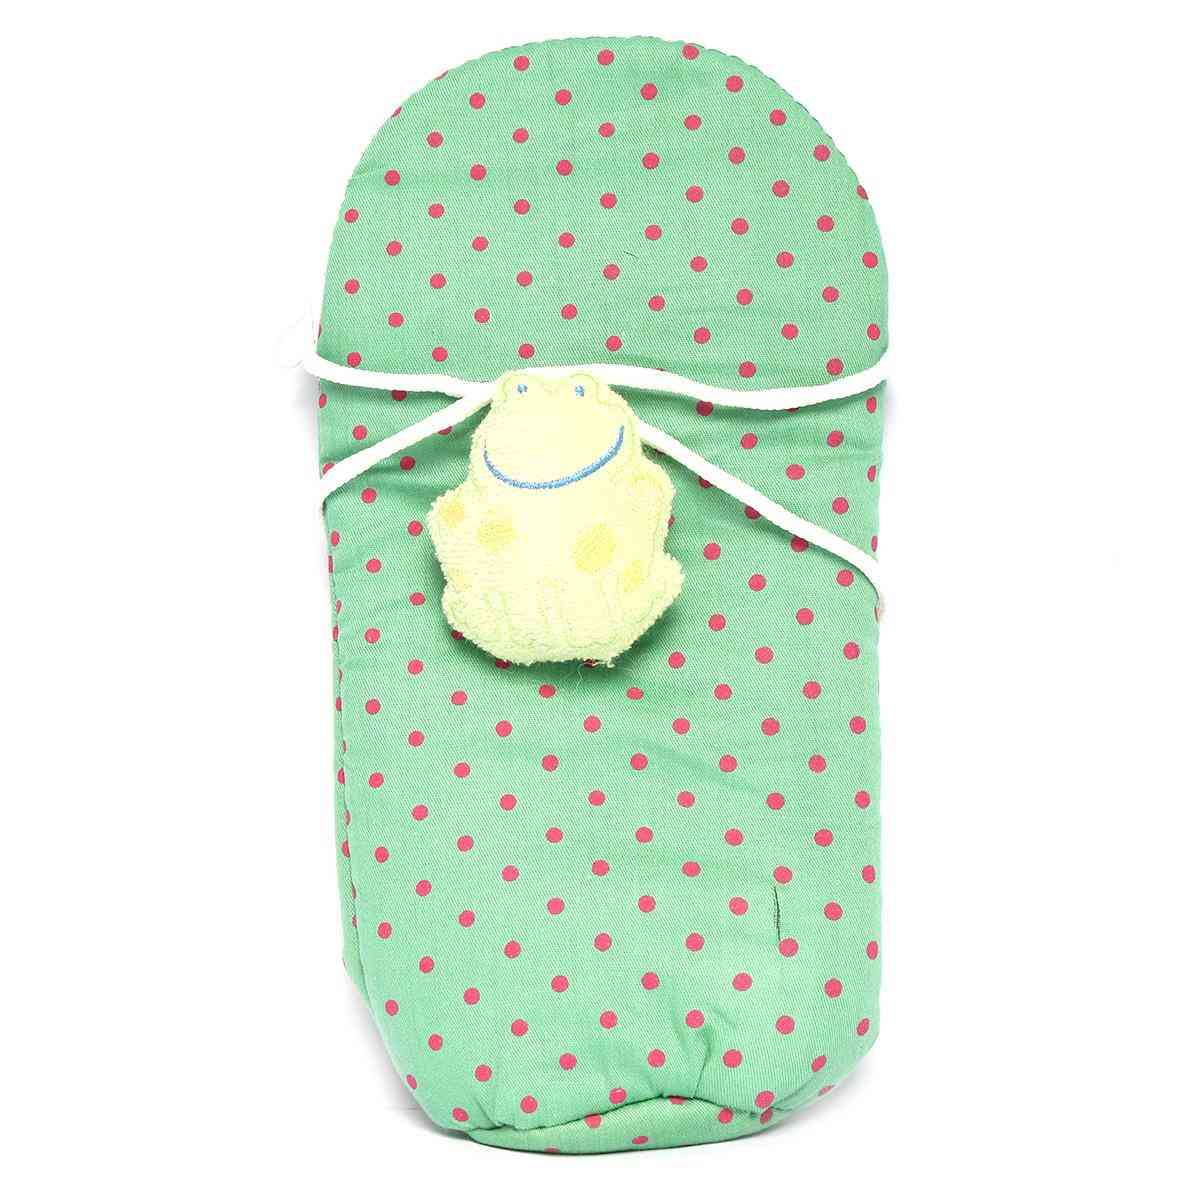 Vitamin Baby Cartoon Character 9x4 Inches Feeder Cover for Feeder Bottle with String  Green